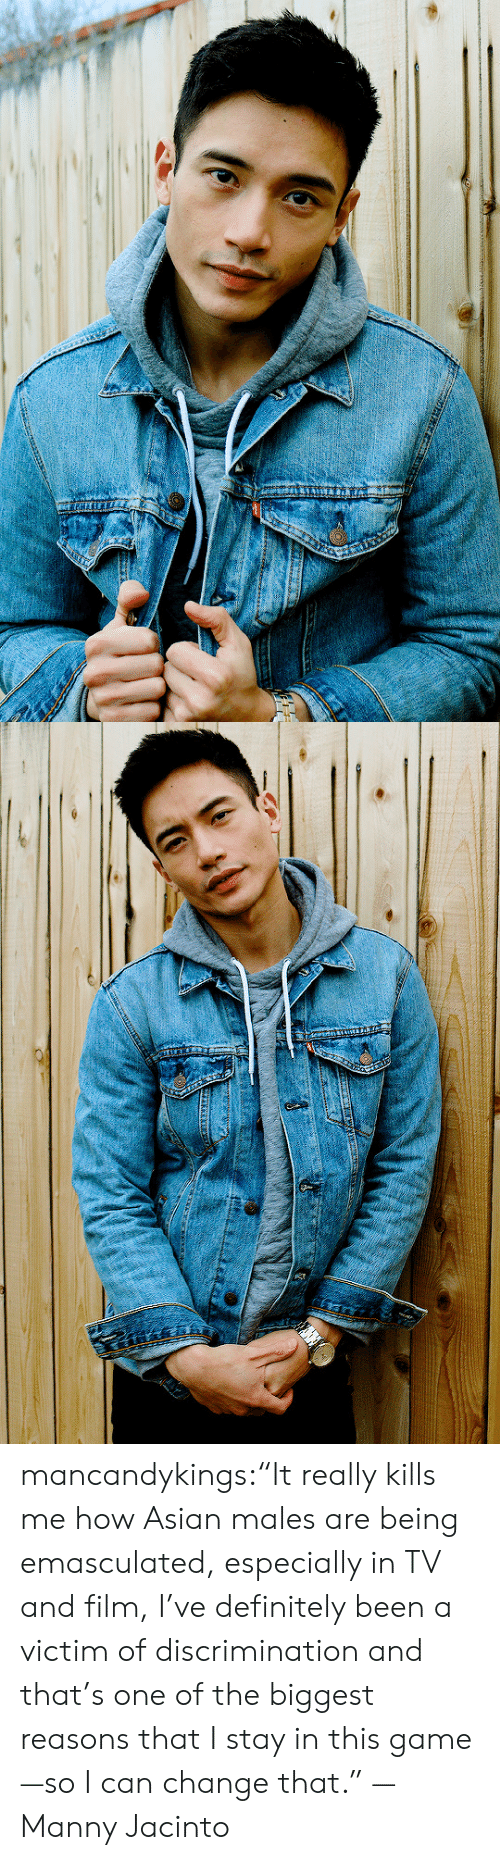 "Asian, Definitely, and Tumblr: mancandykings:""It really kills me how Asian males are being emasculated, especially in TV and film, I've definitely been a victim of discrimination and that's one of the biggest reasons that I stay in this game—so I can change that."" — Manny Jacinto"